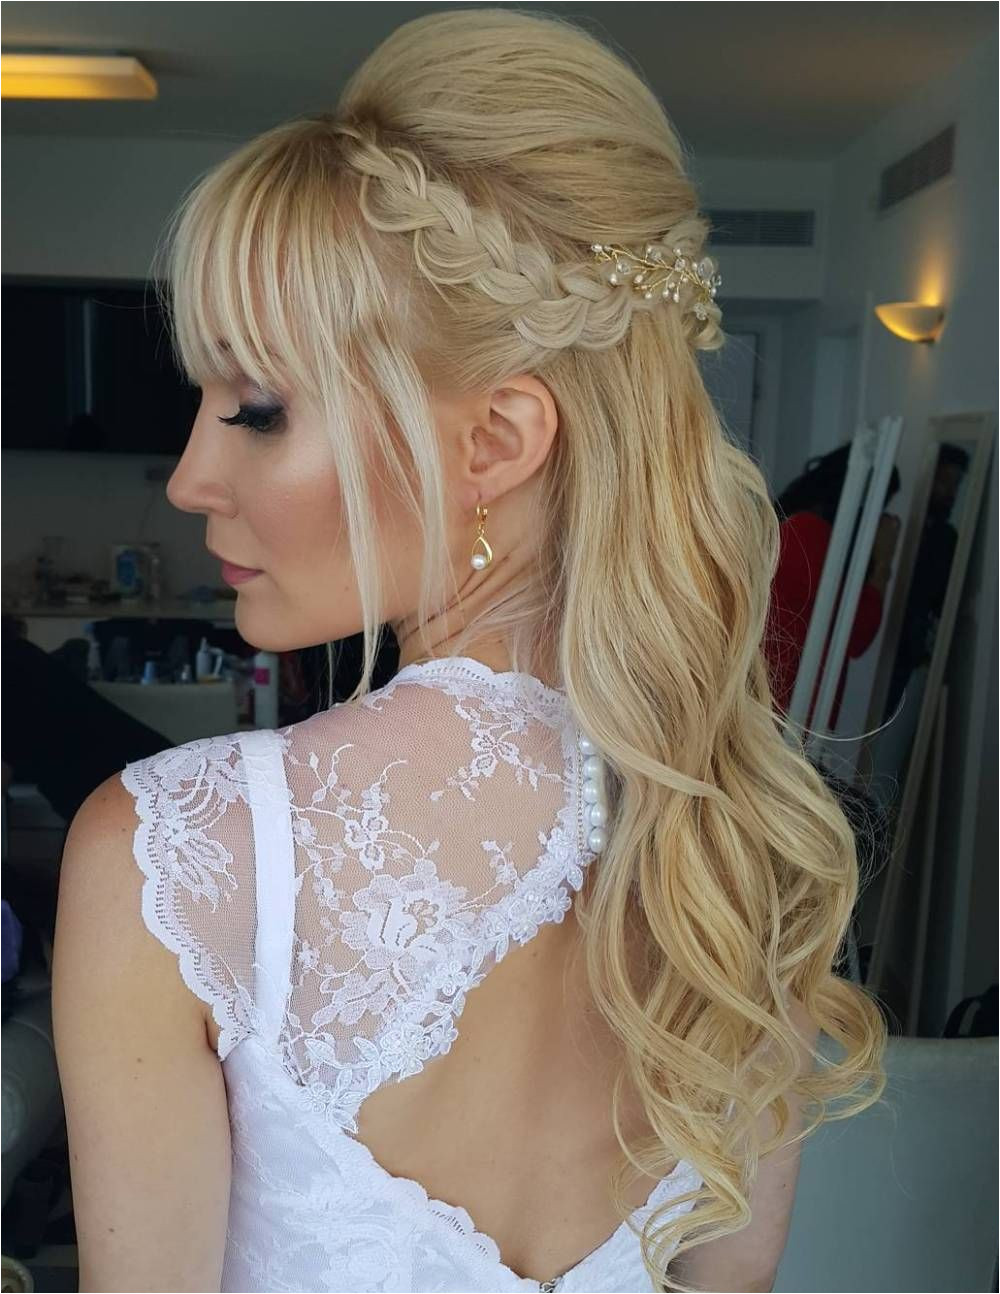 Are you looking for Half Up Half Down Wedding Hairstyles See our collection full of Half Up Half Down Wedding Hairstyles and inspired